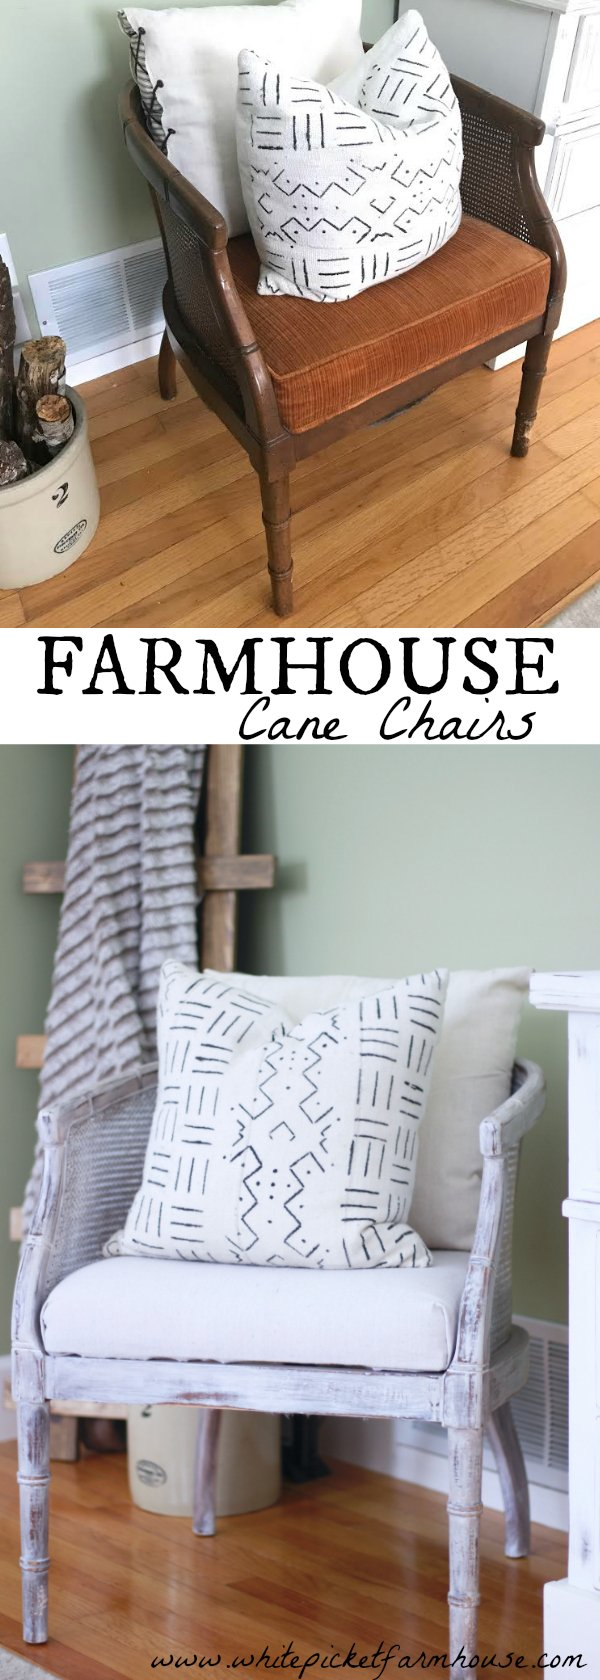 DIY Cane Chairs, How to Reupholster and refinish them easily, Farmhouse Cane Chairs On A Penny, Cheap Decorating